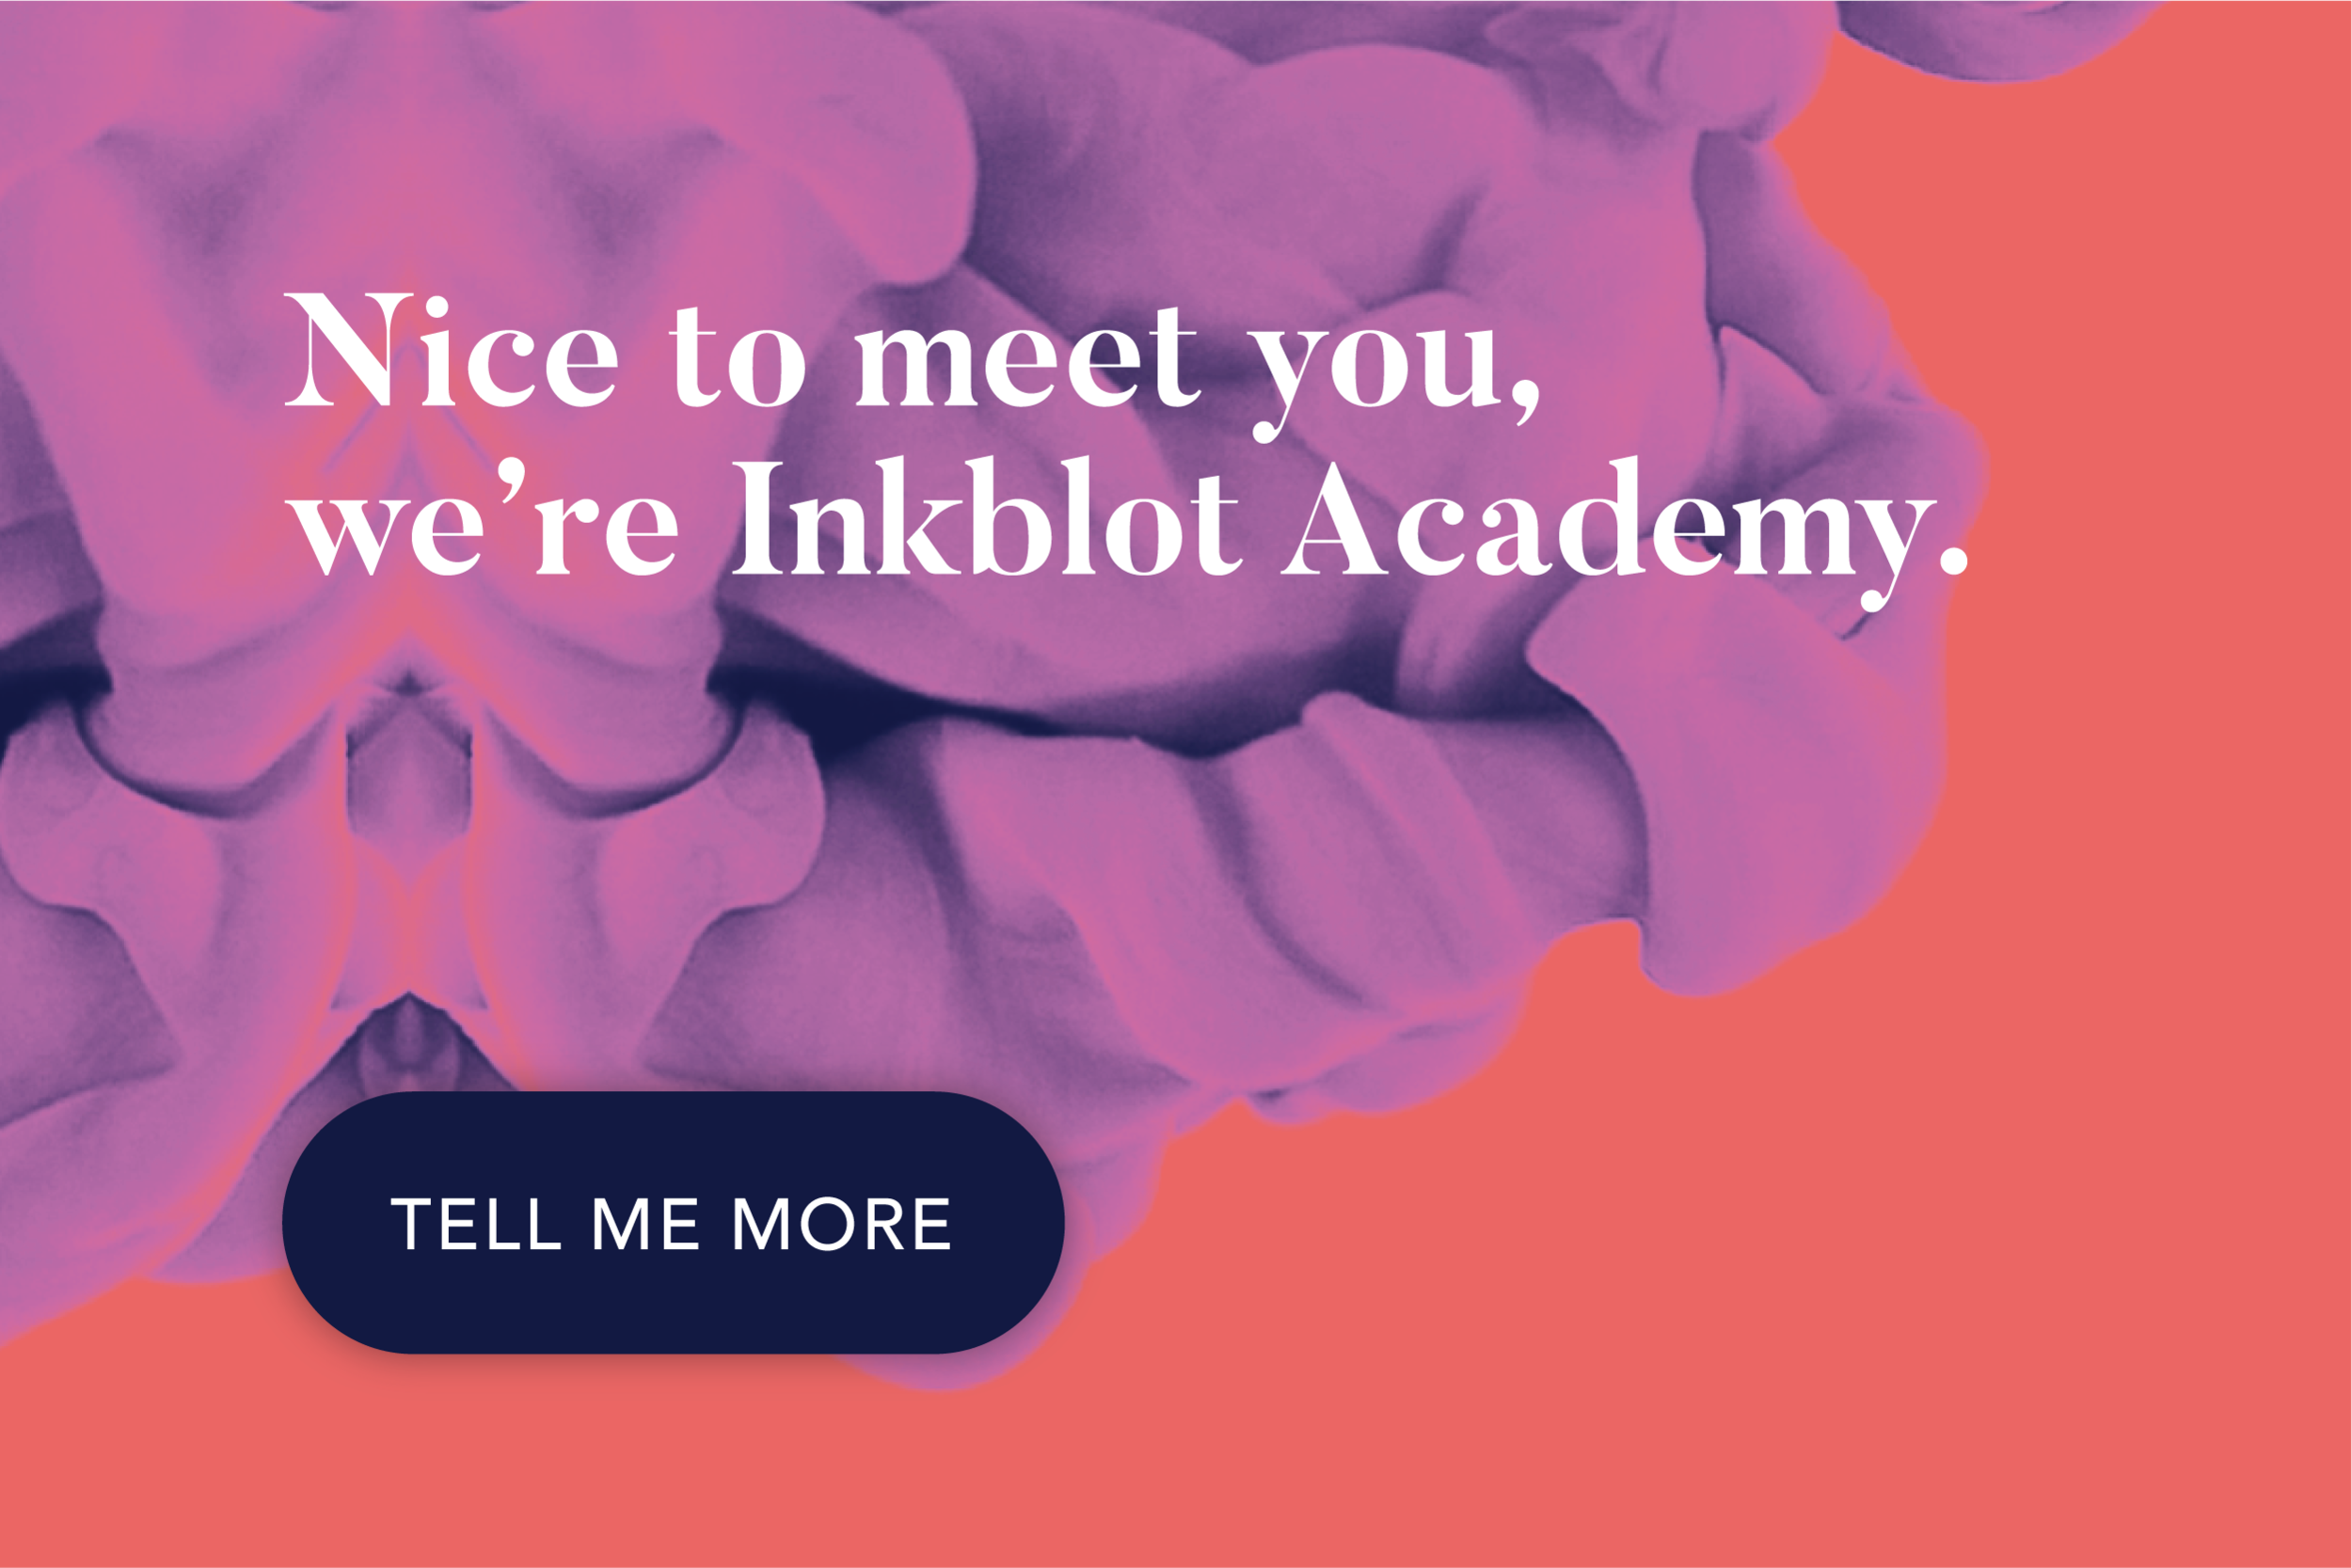 Inkblot Academy Courses About